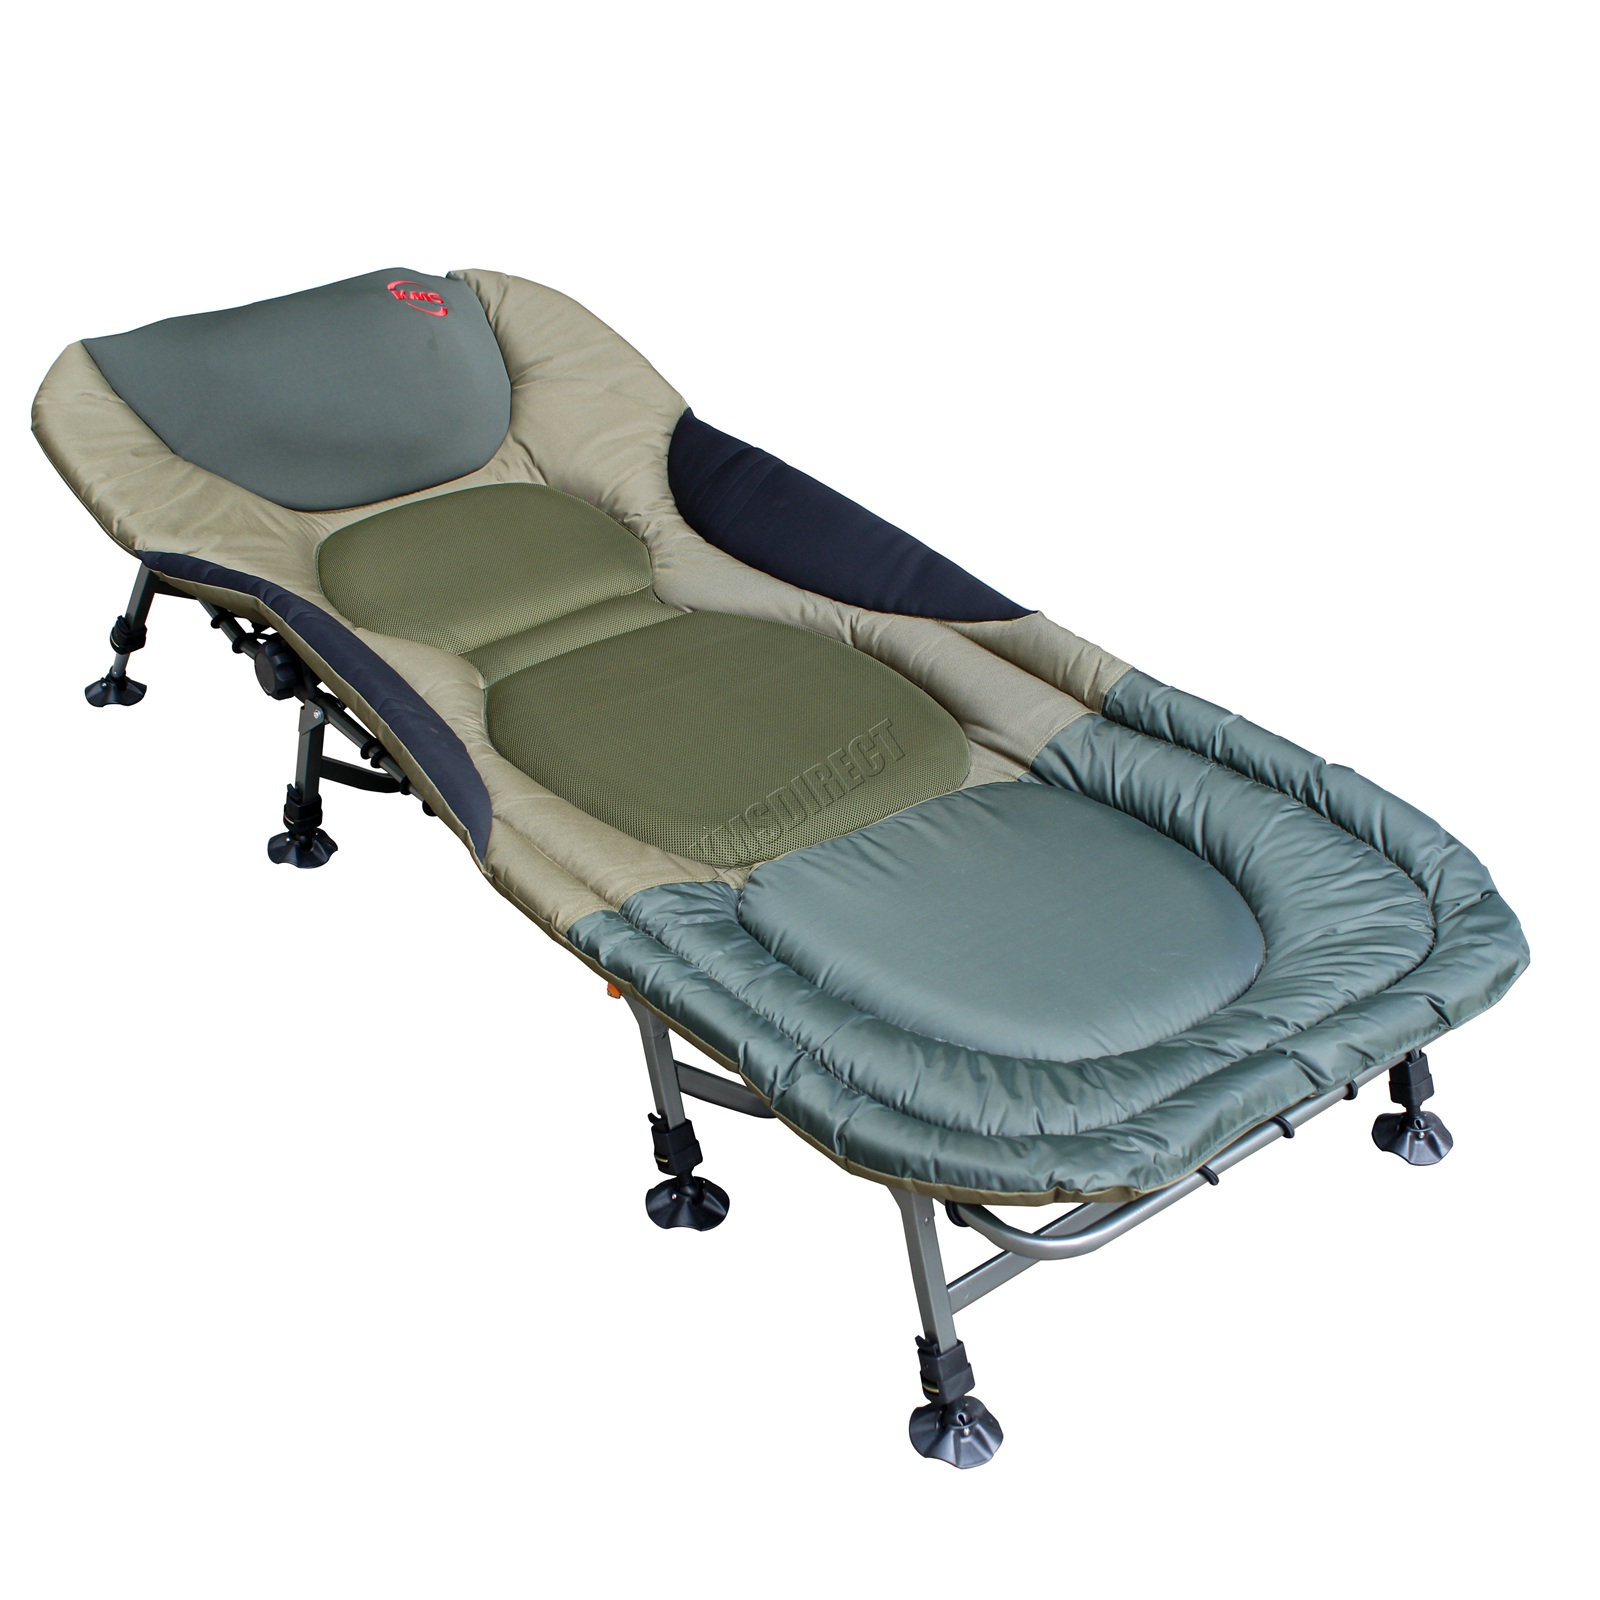 Carp Fishing Bed Chair Bedchair Camping Heavy Duty 8